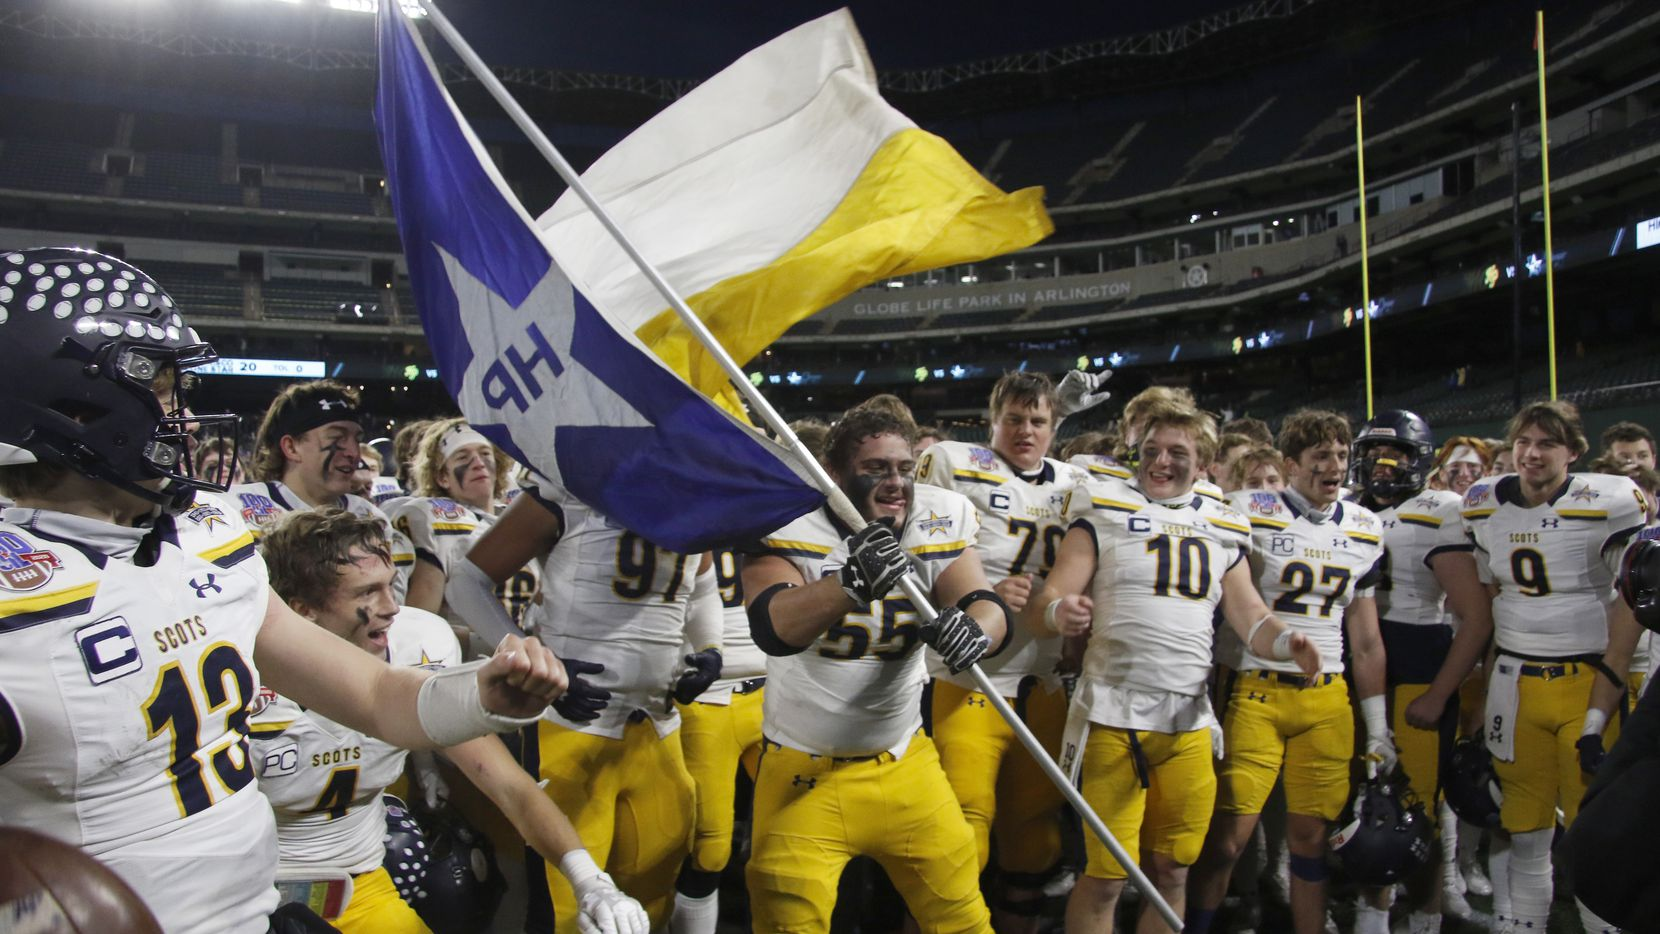 Highland Park offensive lineman Sam Morse (55) handles the flag waving duty as the Scots celebrate following their 30-20 victory over Frisco Lone Star. The two teams played their Class 5A Division l Region ll semifinal football playoff game held at Globe Life Park in Arlington on December 24, 2020.